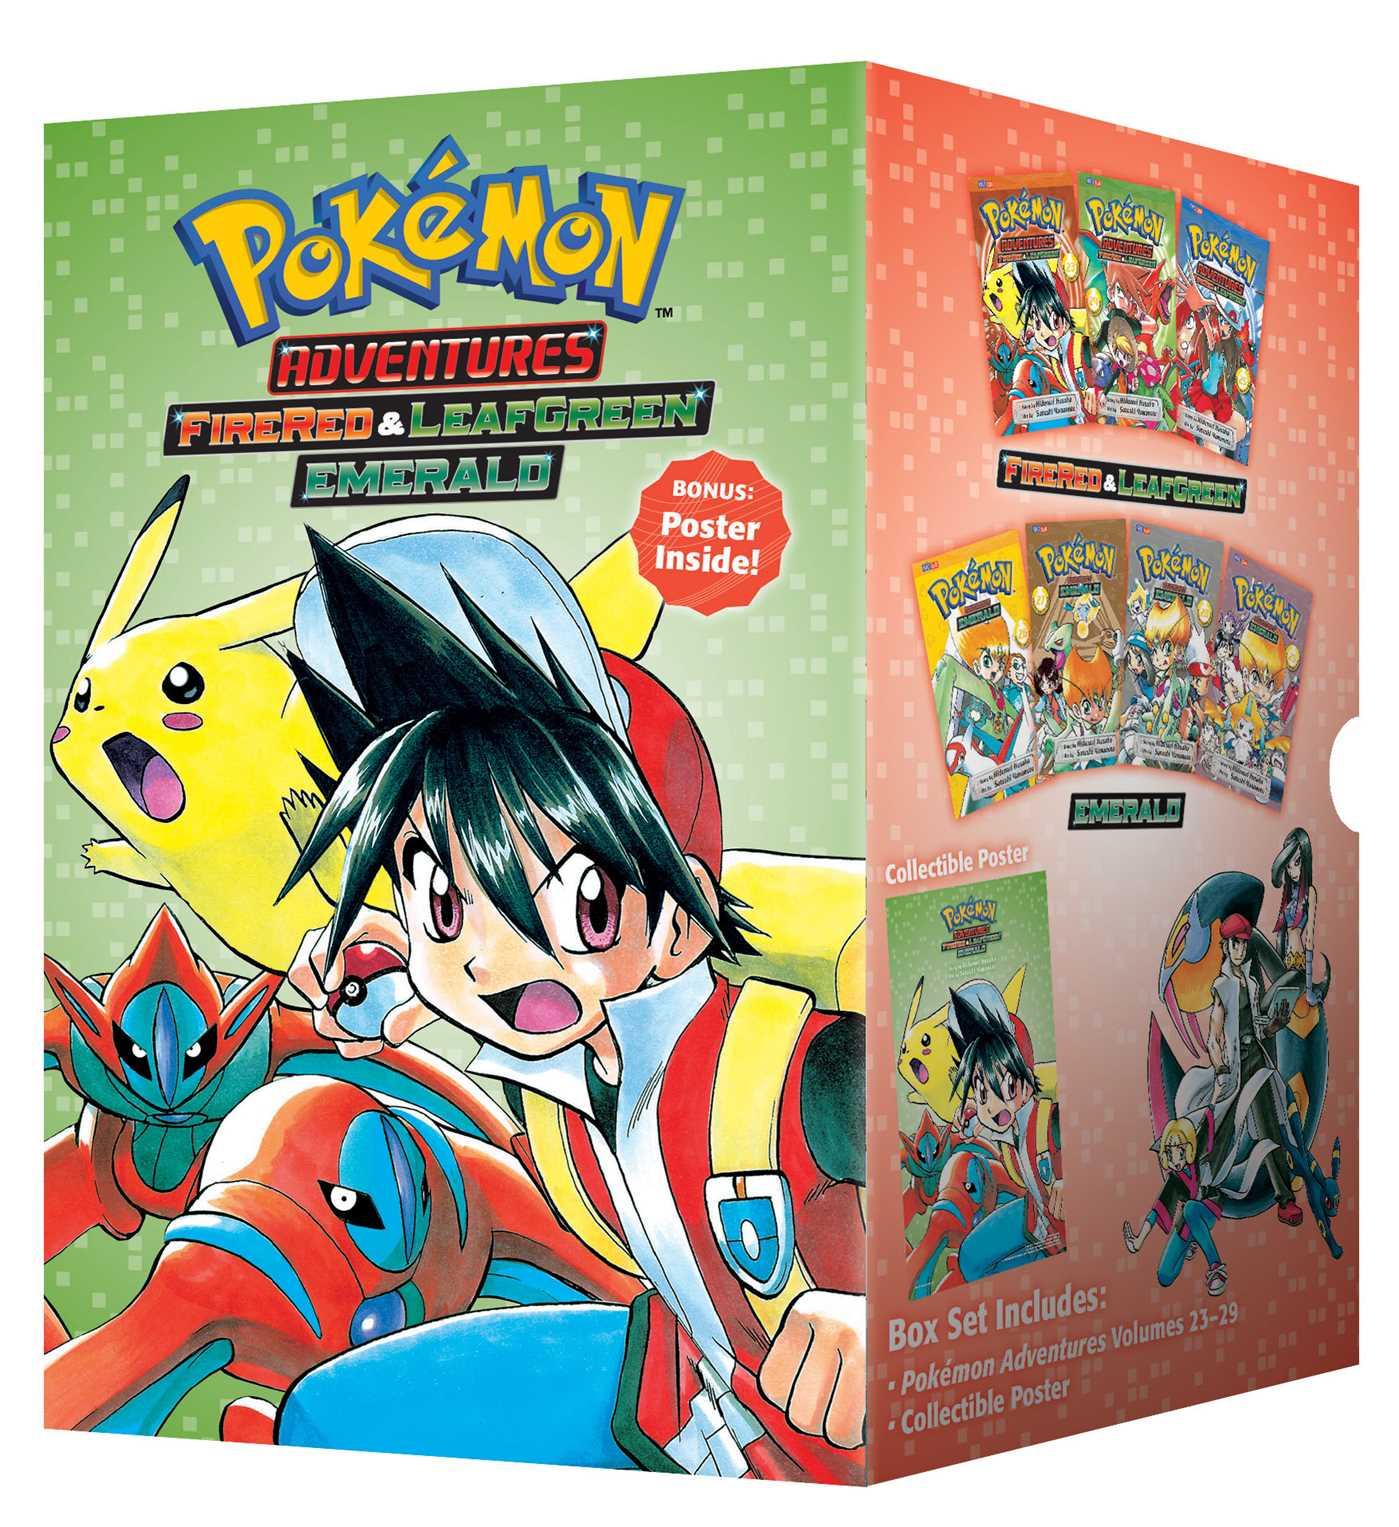 Pokémon Adventures, Pokémon, Comic-Con International